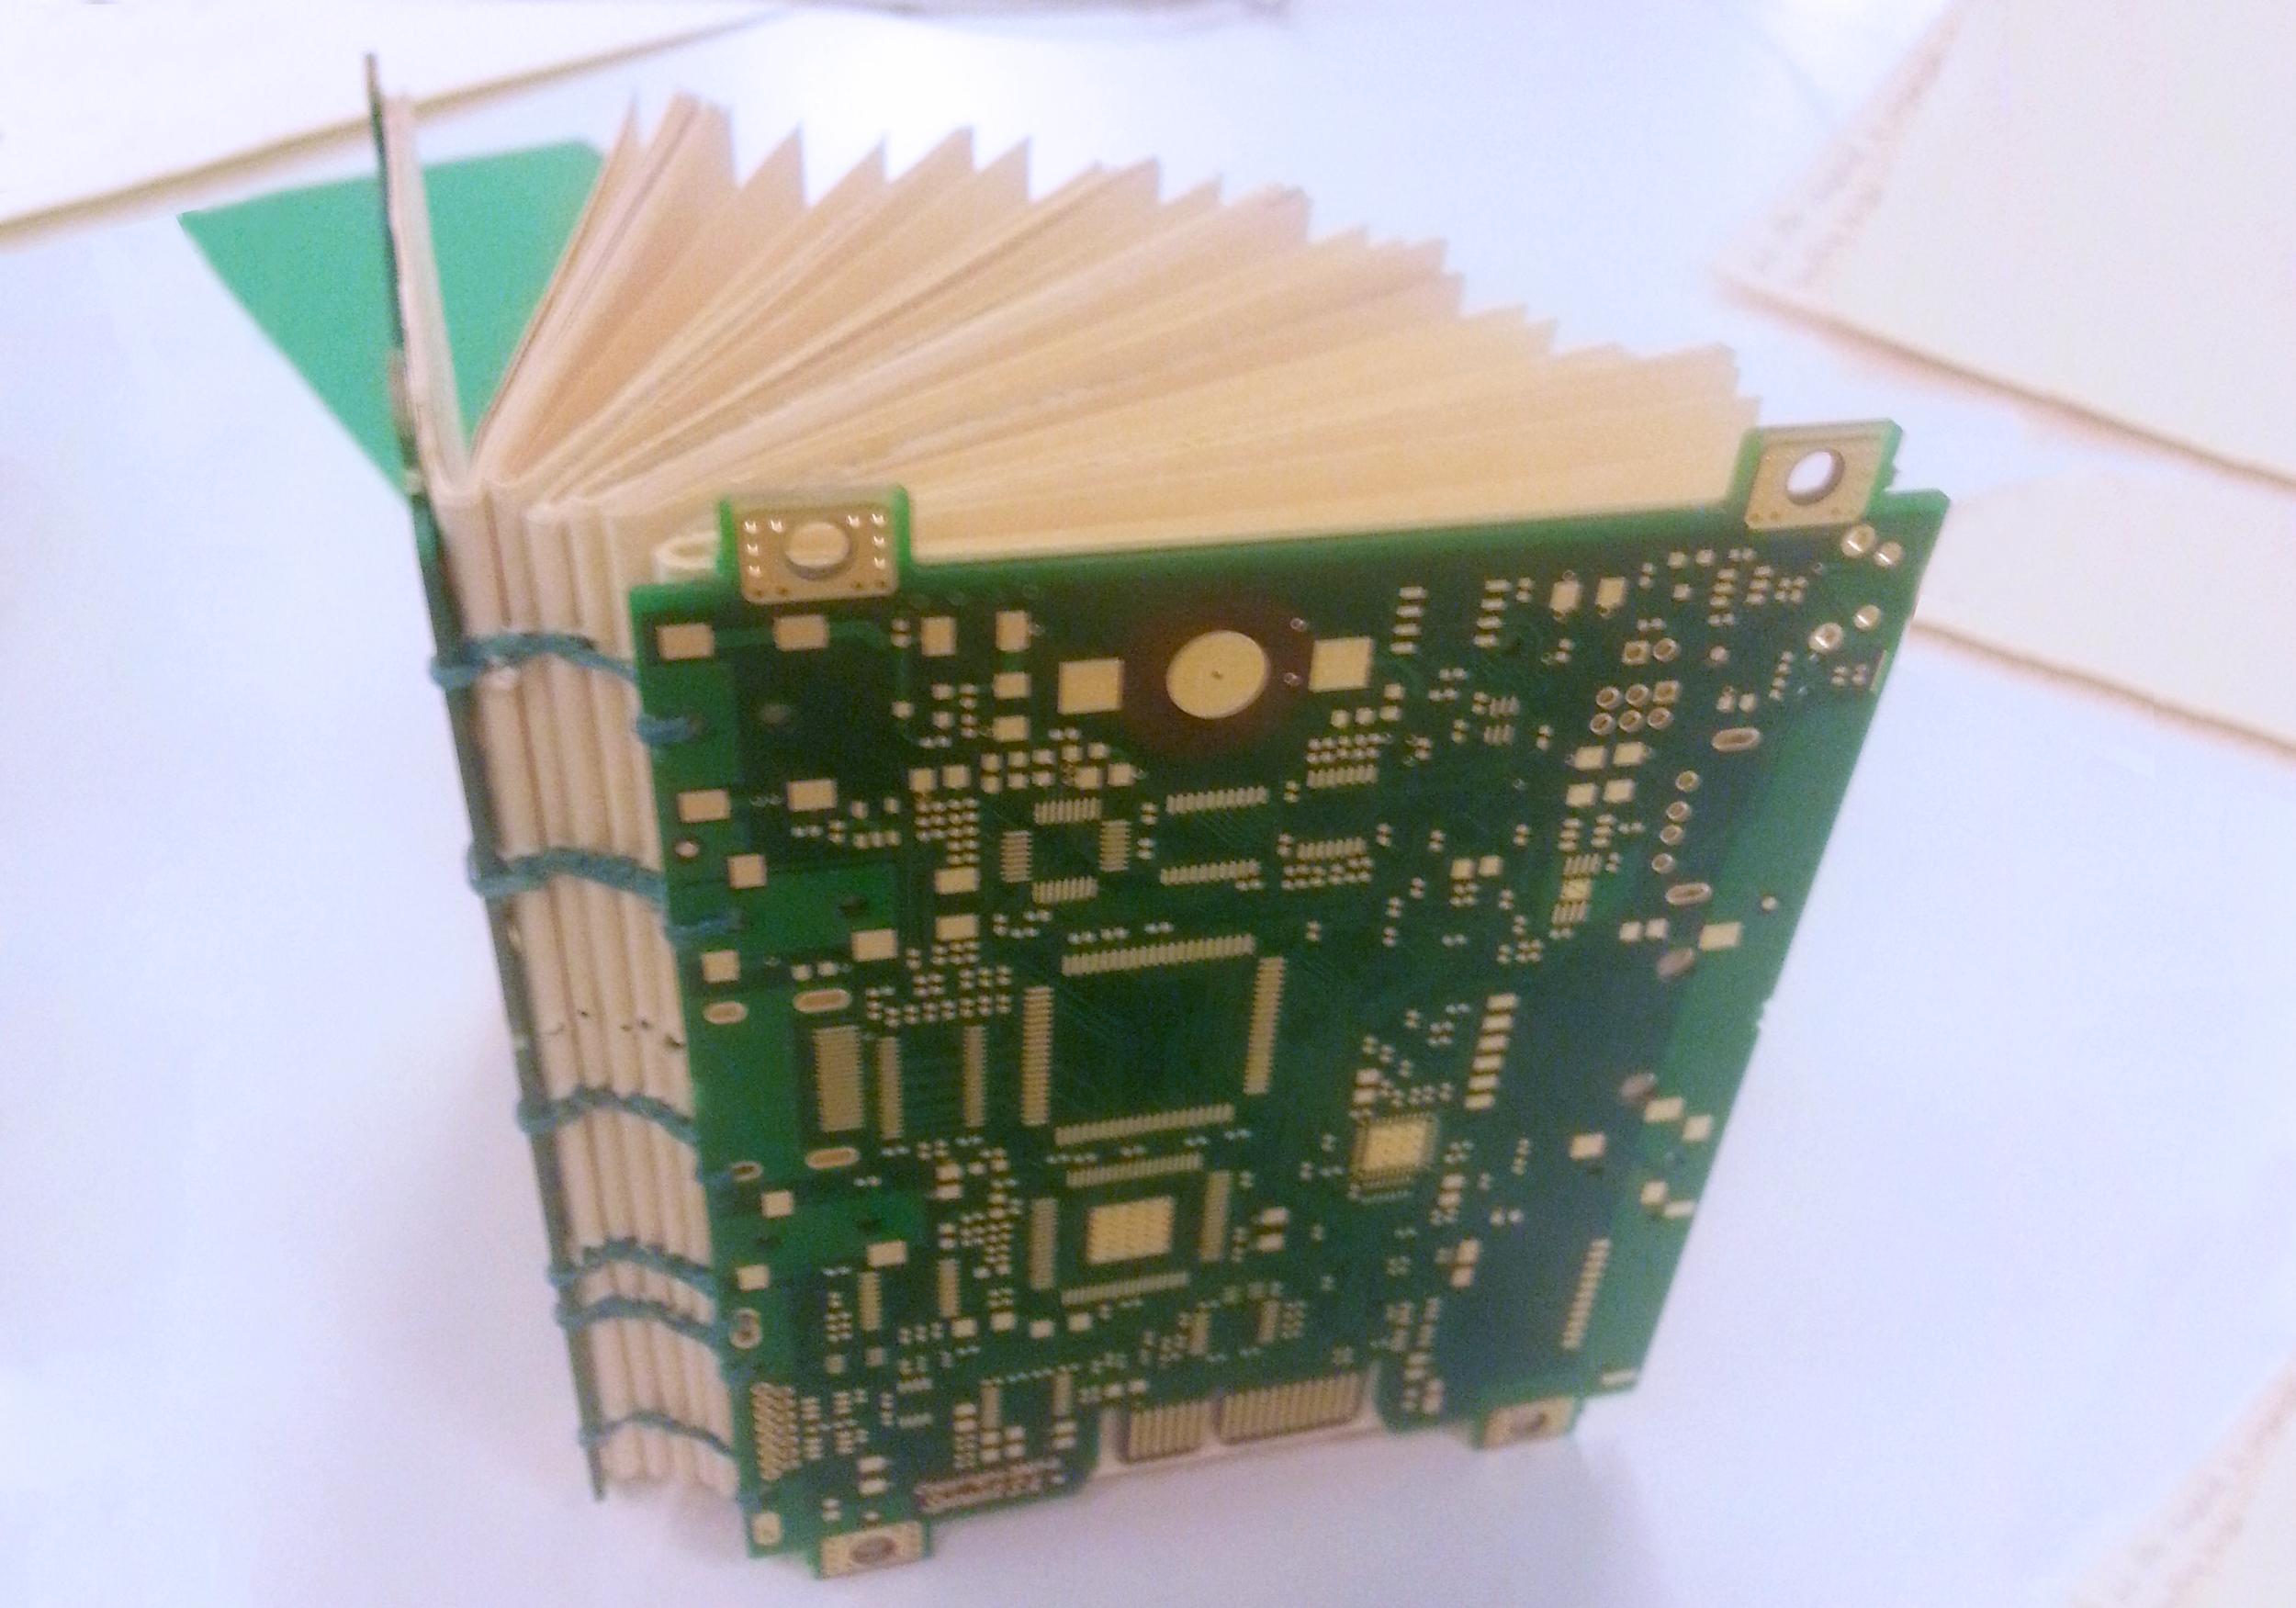 Coptic Bookbinding with old circuit boards! From a workshop I took at DU.